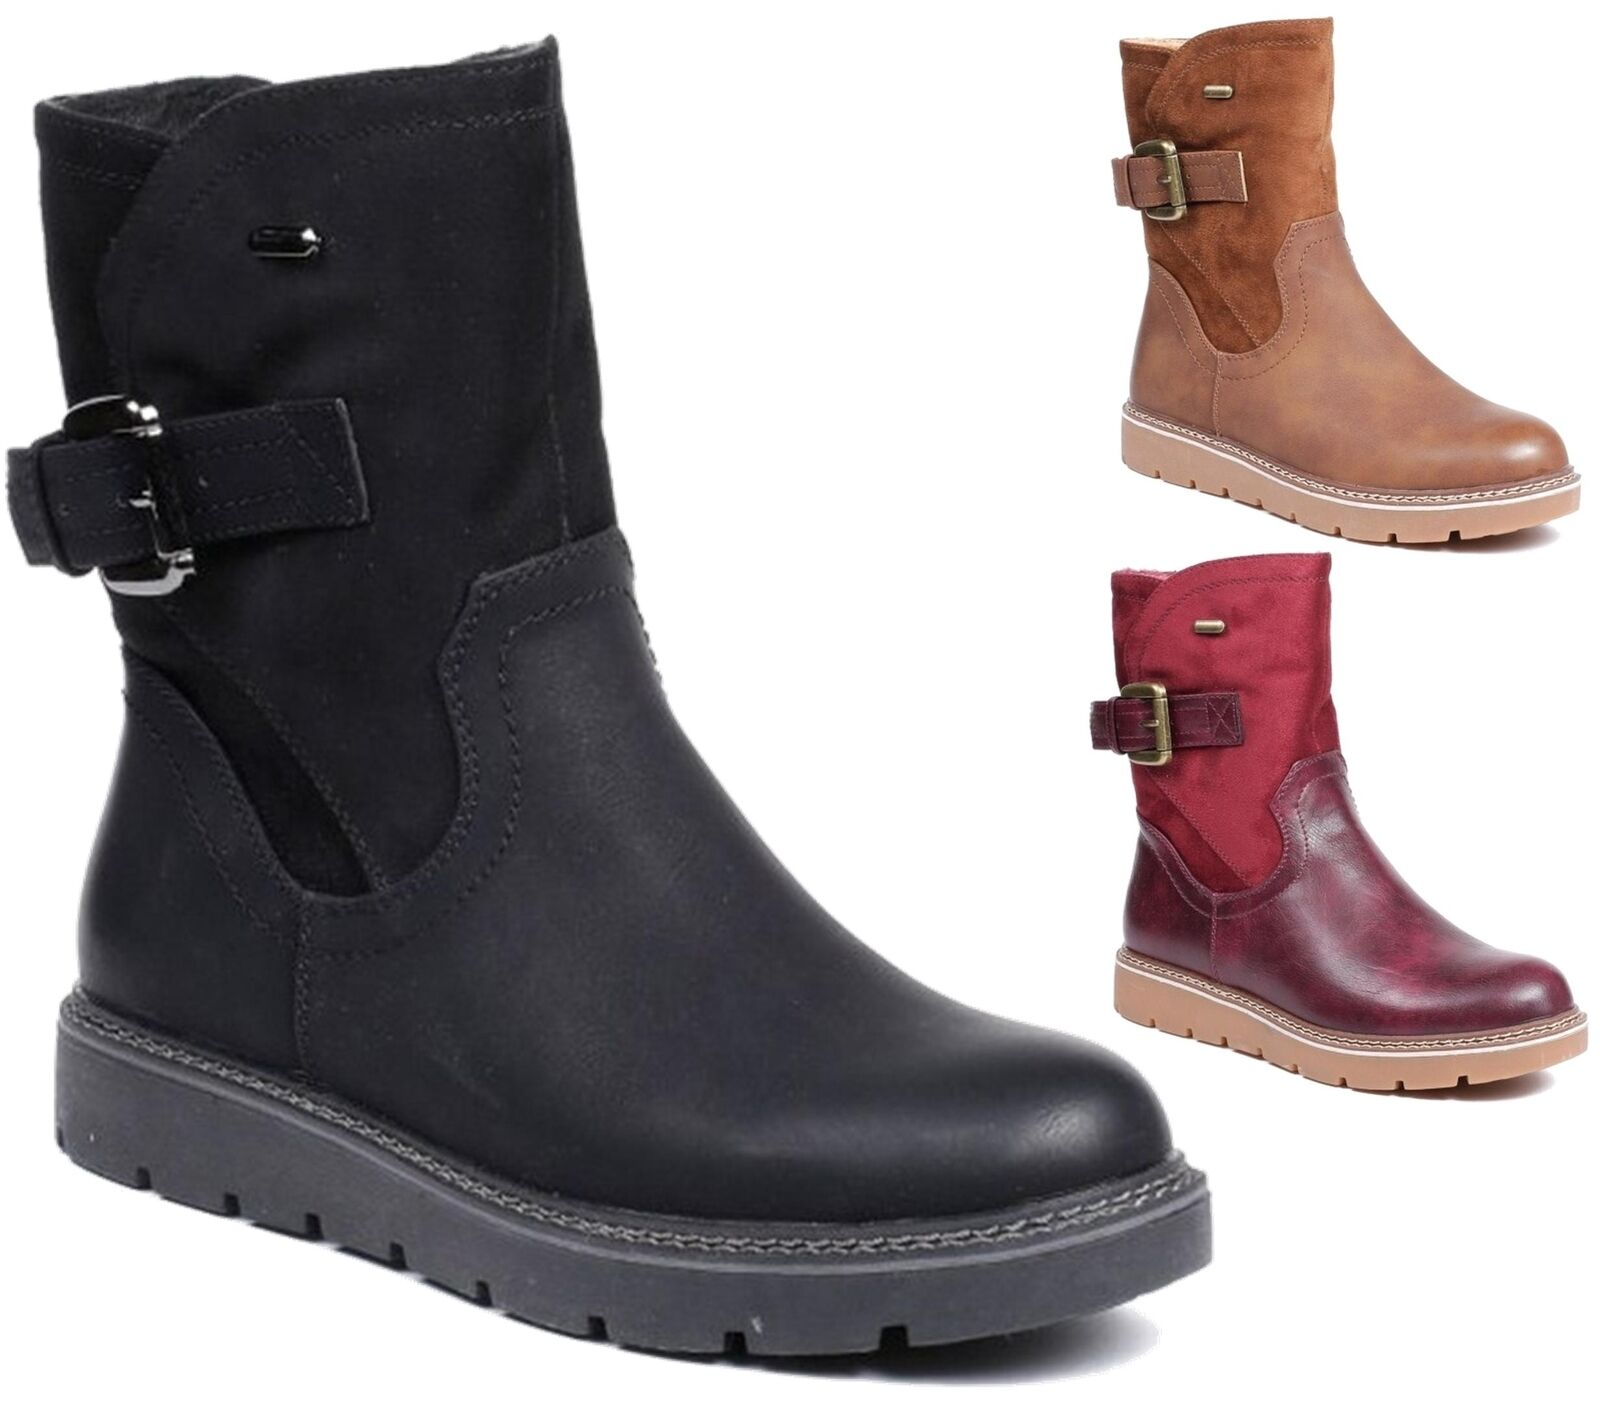 Ladies Womens New Faux Leather Mid Calf Low Flat Heel Slouch Riding Boots shoes